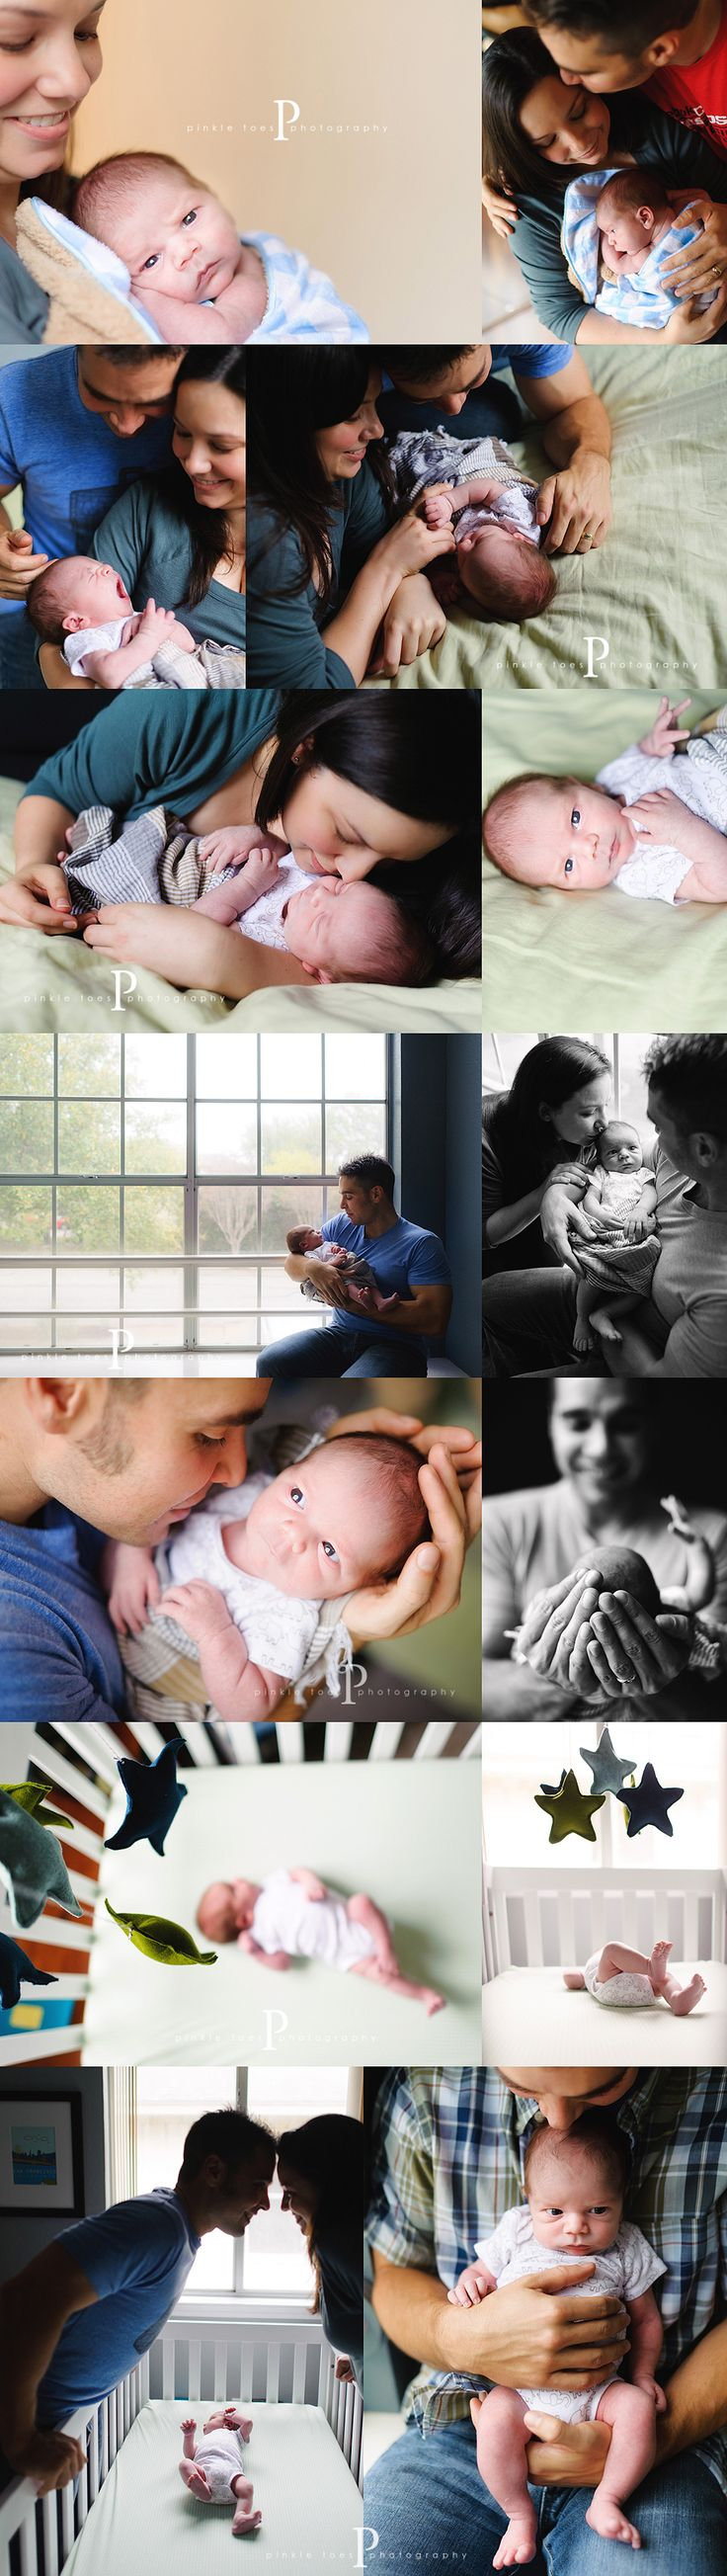 Once again, Michelle Anderson captures the true beauty of a family.